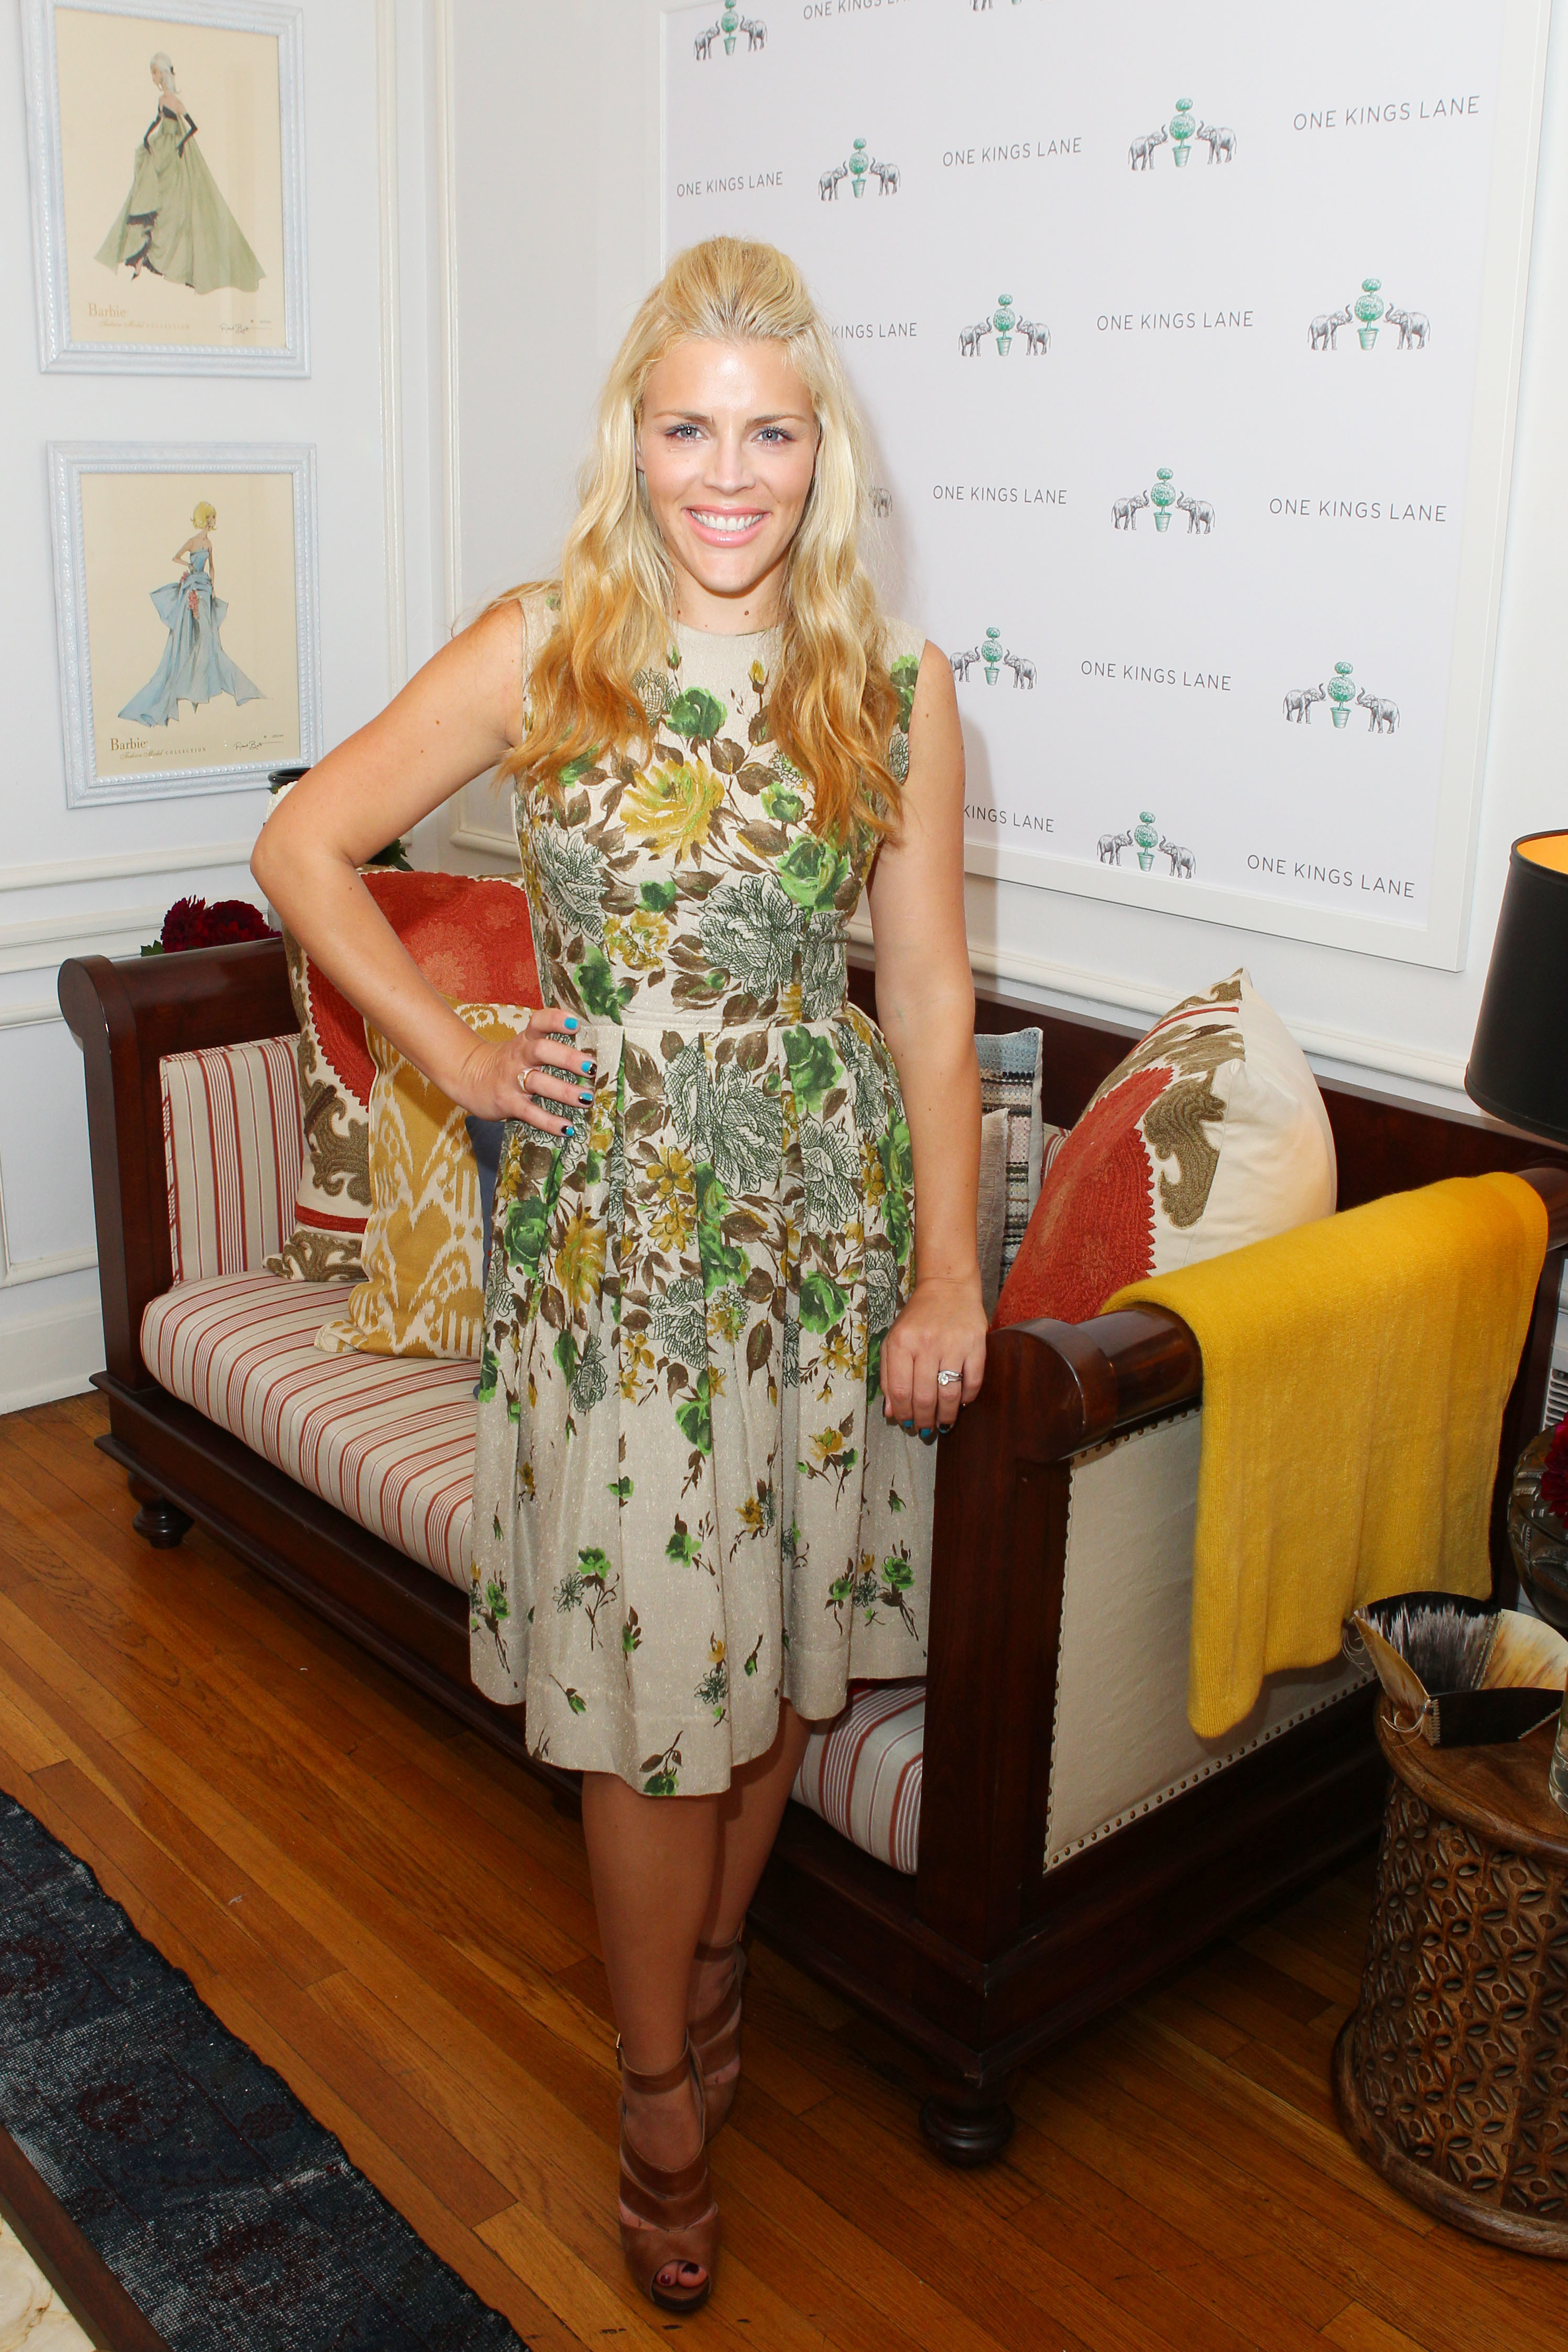 Busy_Philipps_Unveils_Charity_Sale_for_One_Kings_Lane_SCAR2546